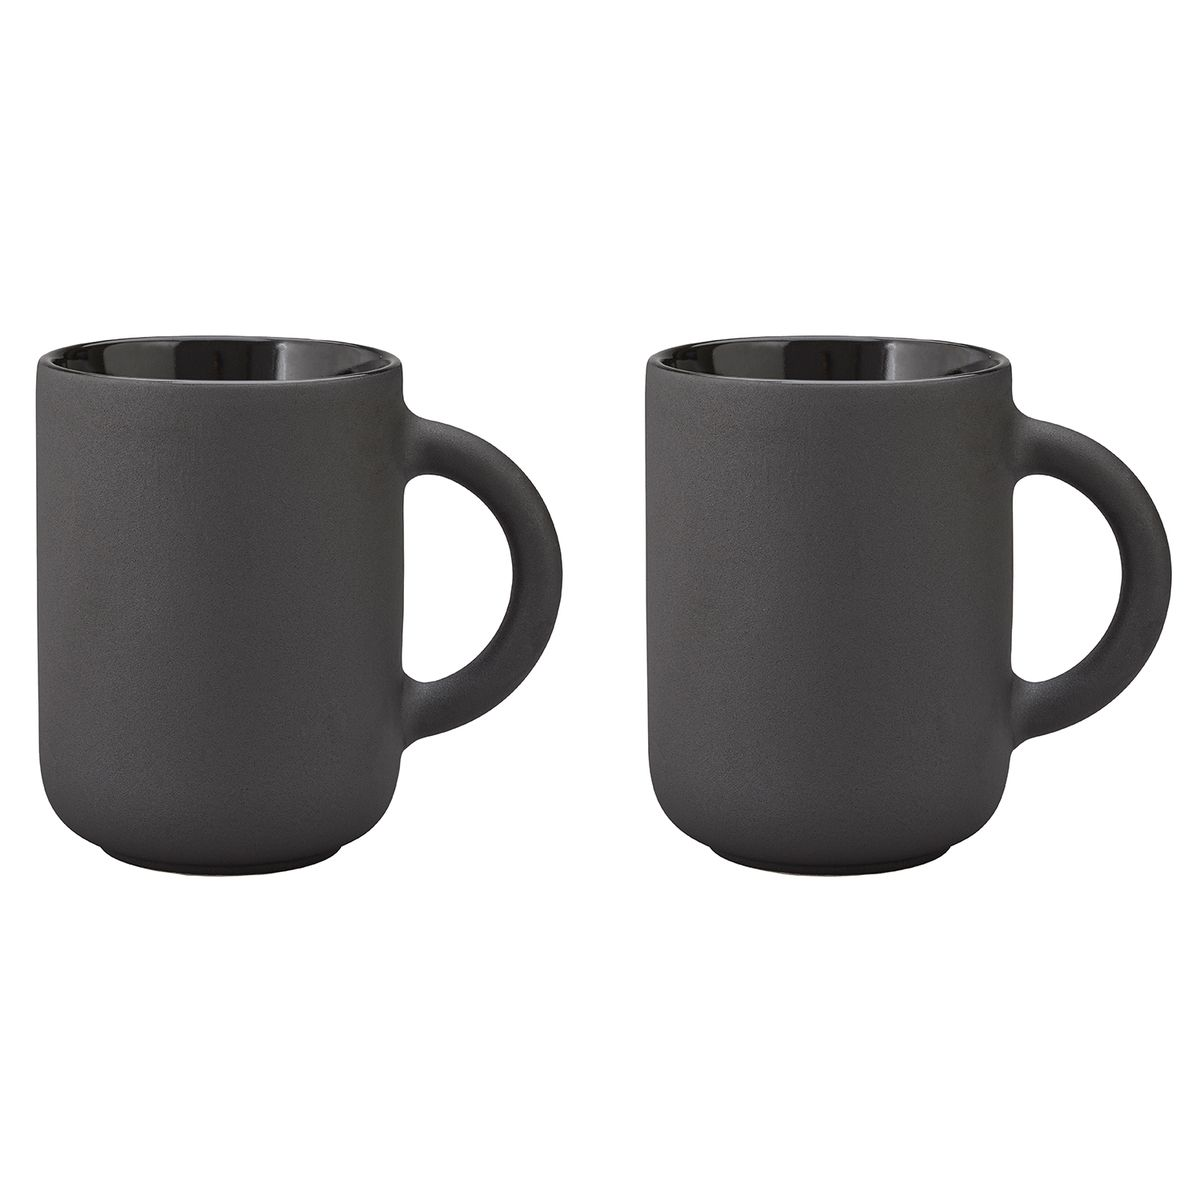 Stelton S Theo Tea Mugs Combine Scandinavian Design With Asian Influences In A Sophisticated Way Designed By Francis Cayouette Th Mugs Stoneware Mugs Stelton